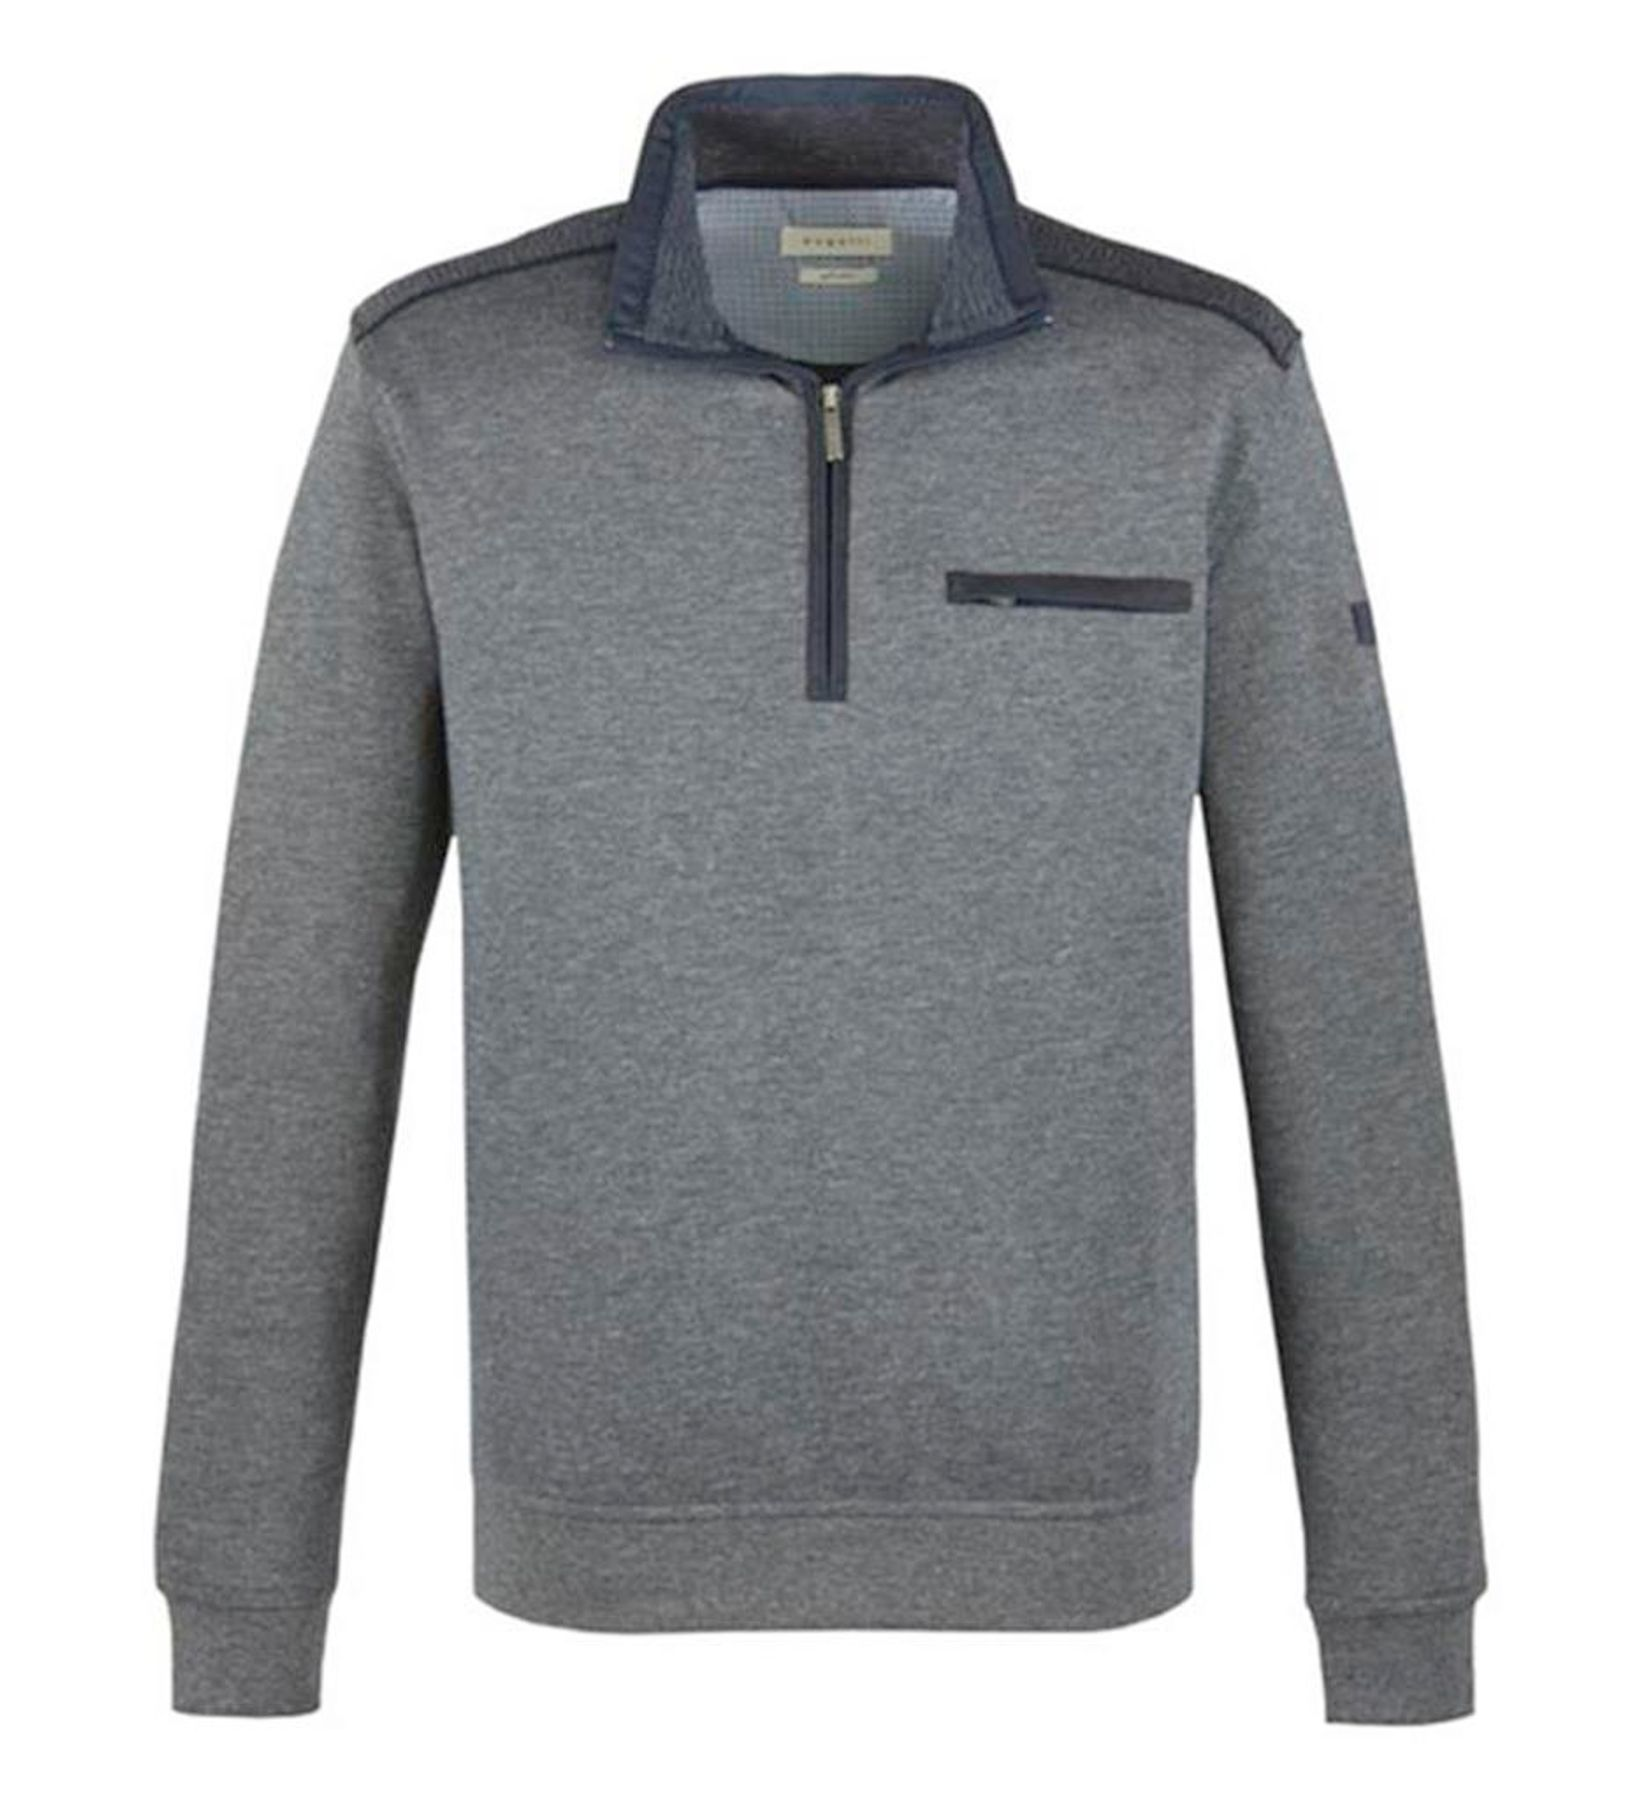 Bugatti - Herren Sweat Troyer (Art. Nr.:  95150-8500)